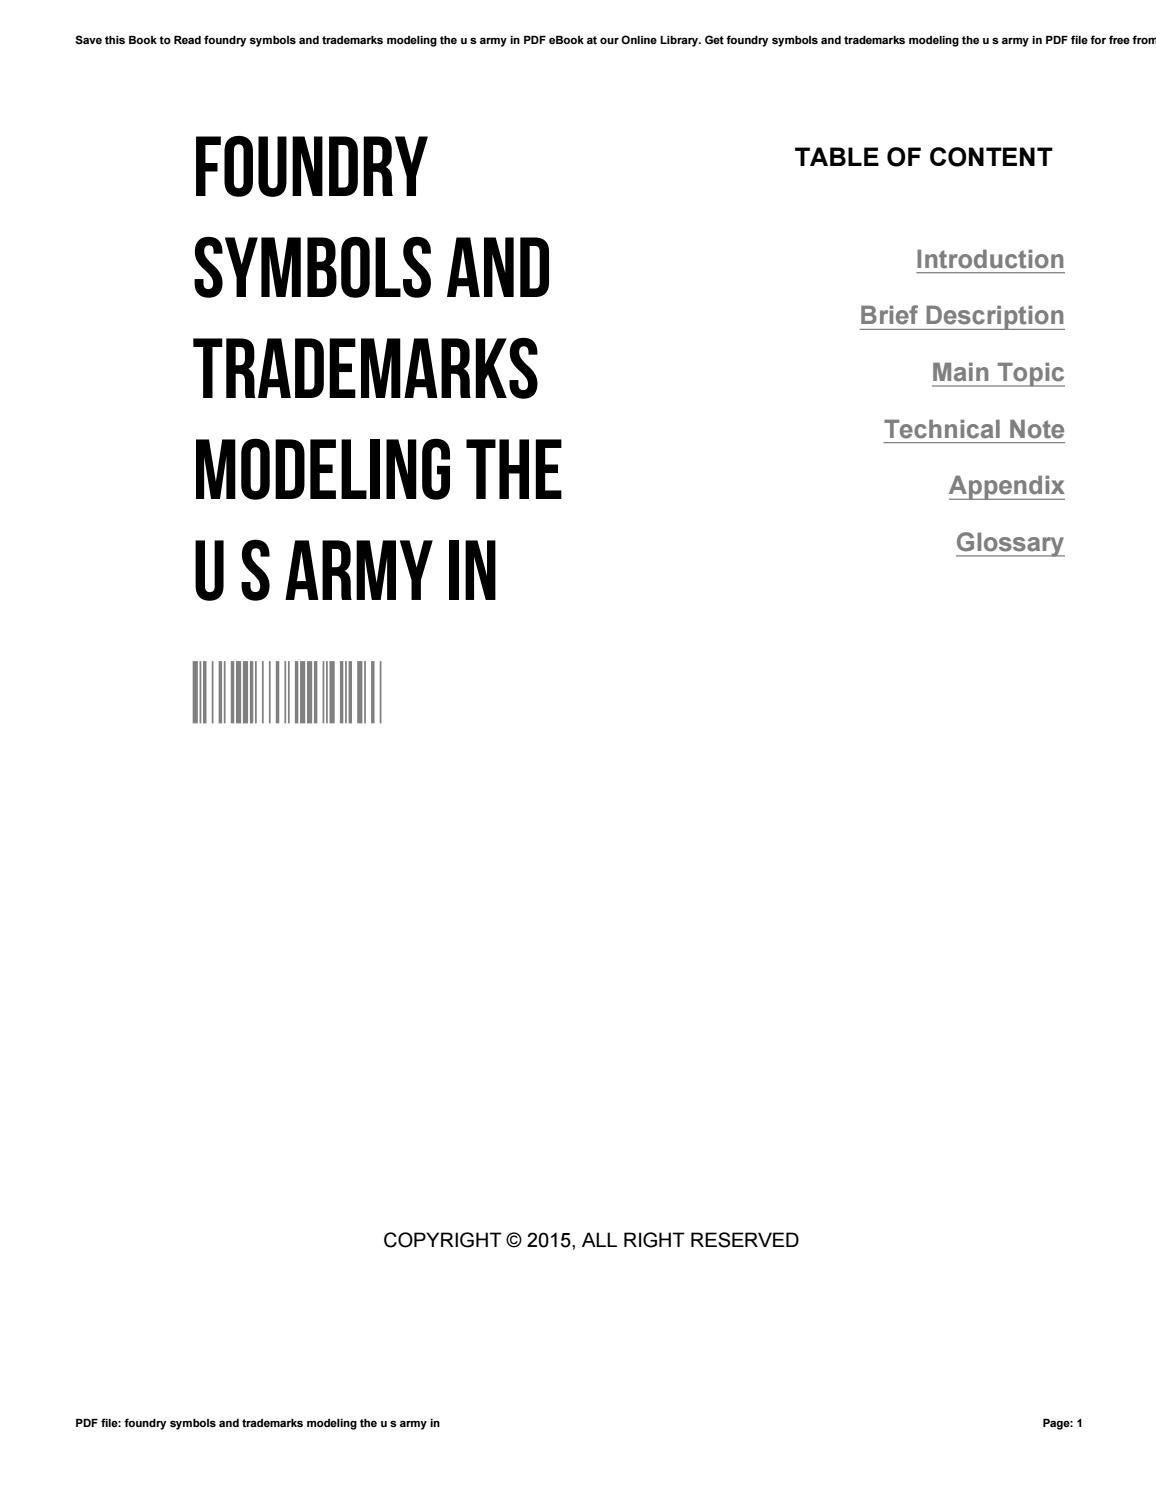 Foundry Symbols And Trademarks Modeling The U S Army In By